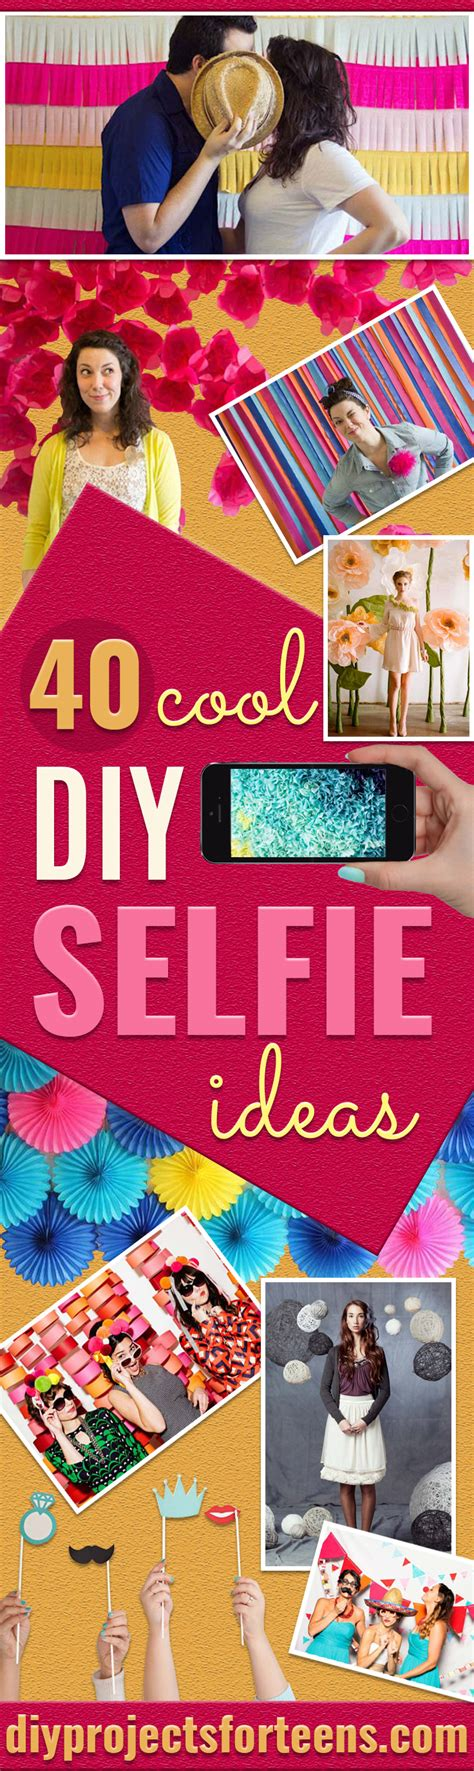 40 cool diy selfie ideas